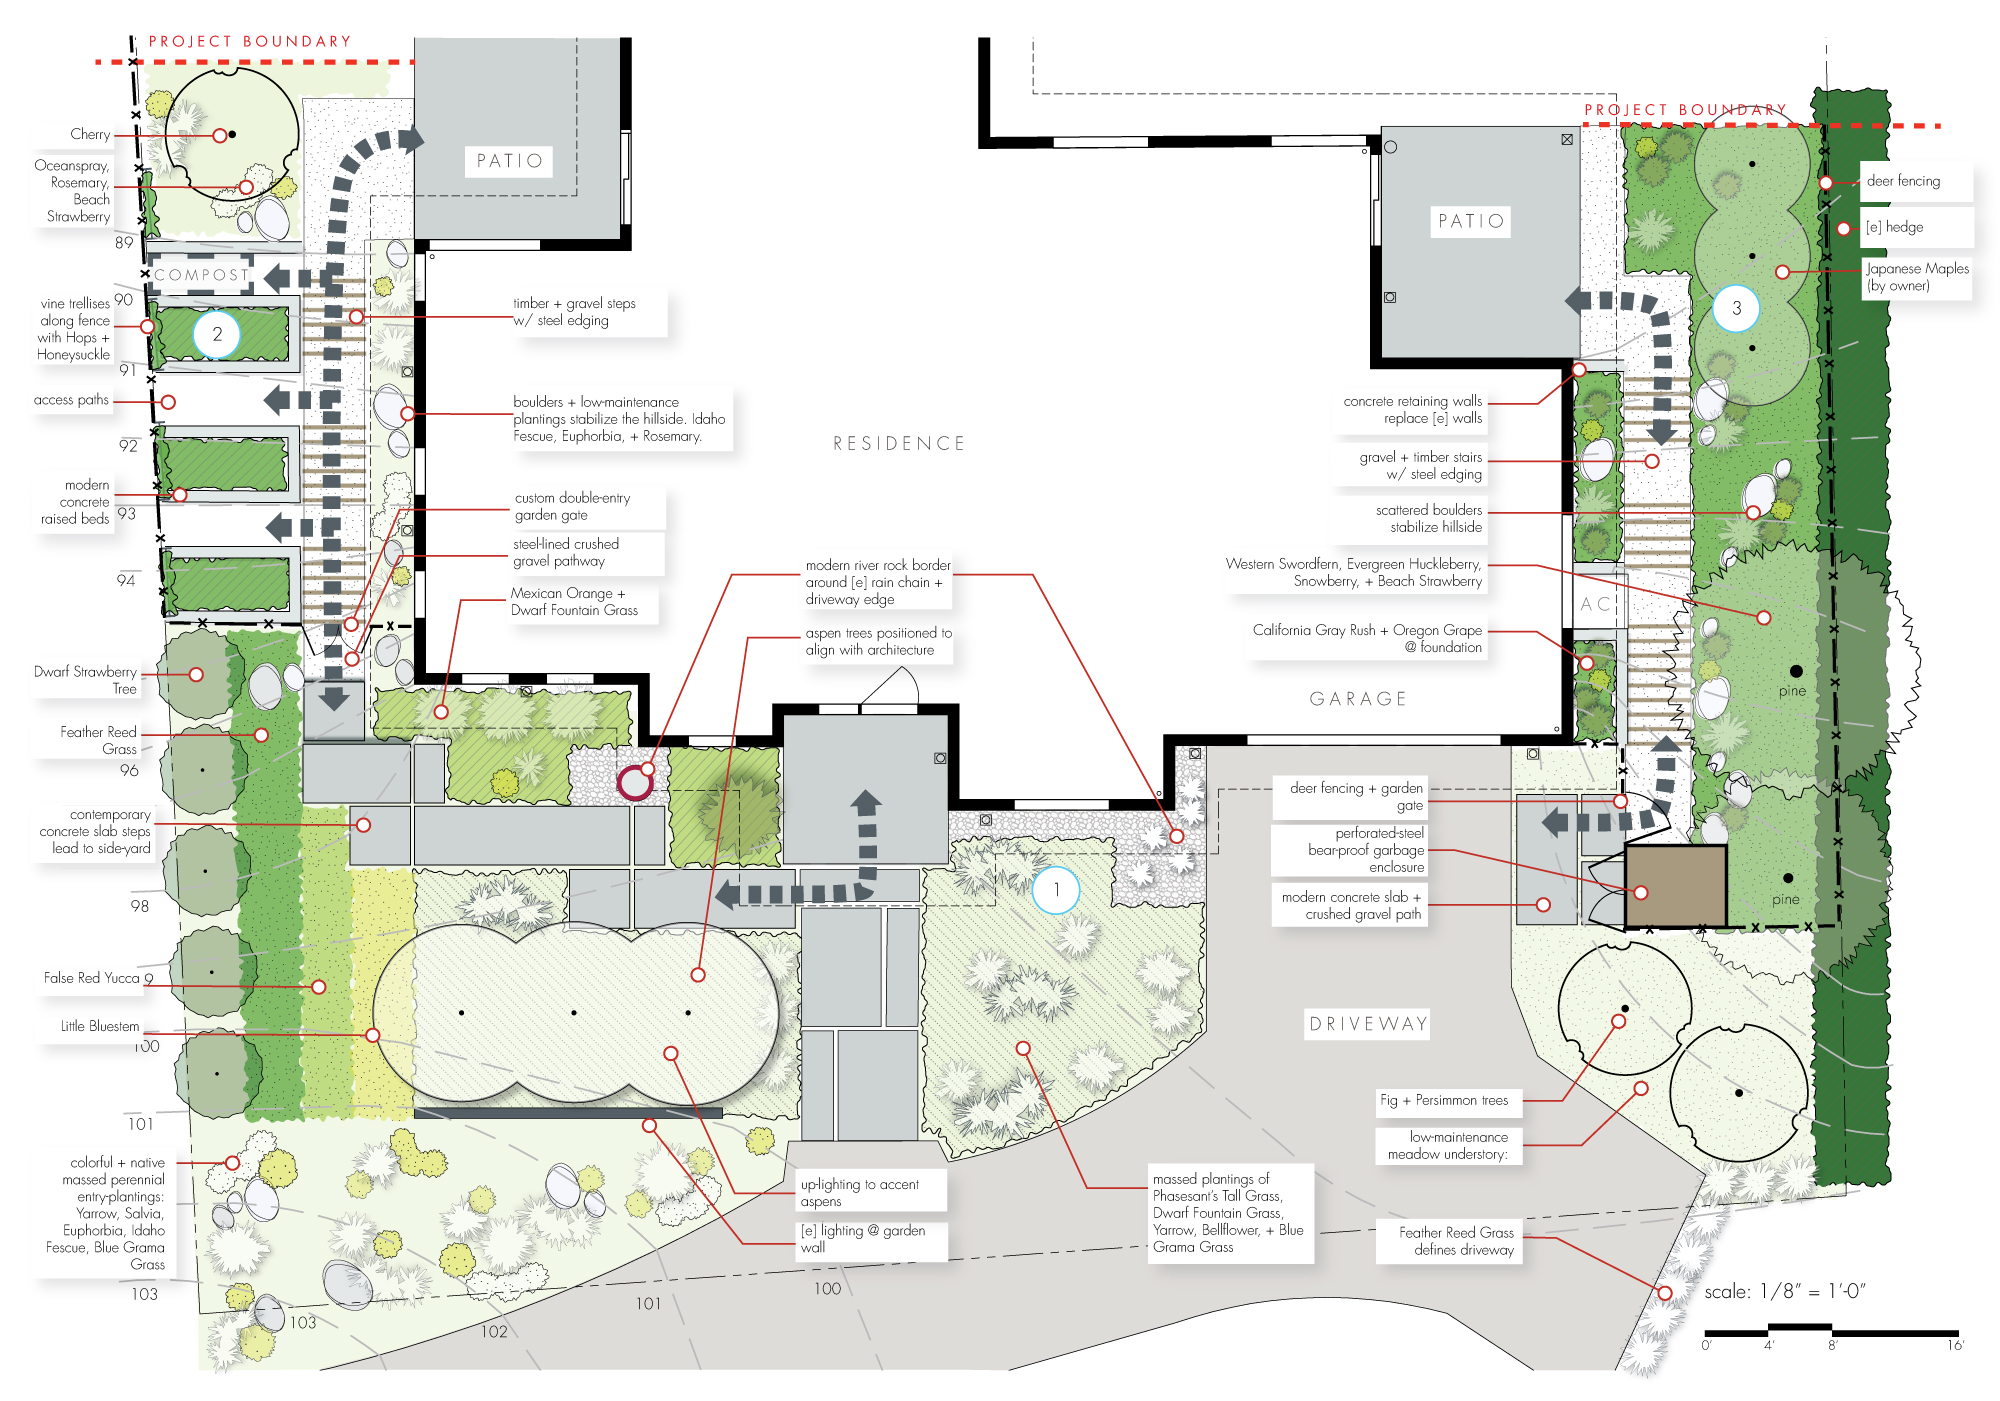 Design Services — Regenesis | Landscape Design + Construction in on houzz shed design, scale design, data flow diagram, tube map, blueprint design, ladder logic, biodiesel processor design, output design, three dimensional design, piping and instrumentation diagram, construction design, assembly design, component design, integrated design, one-line diagram, straight-line diagram, specifications design, block diagram, product page design, engineering design, fluid design, circuit diagram, diagramming software, technical drawing, switch design, electronic design automation, control flow diagram, functional flow block diagram, landscape design, audio design, function block diagram, schema design, amplifier design, cross section, service design,